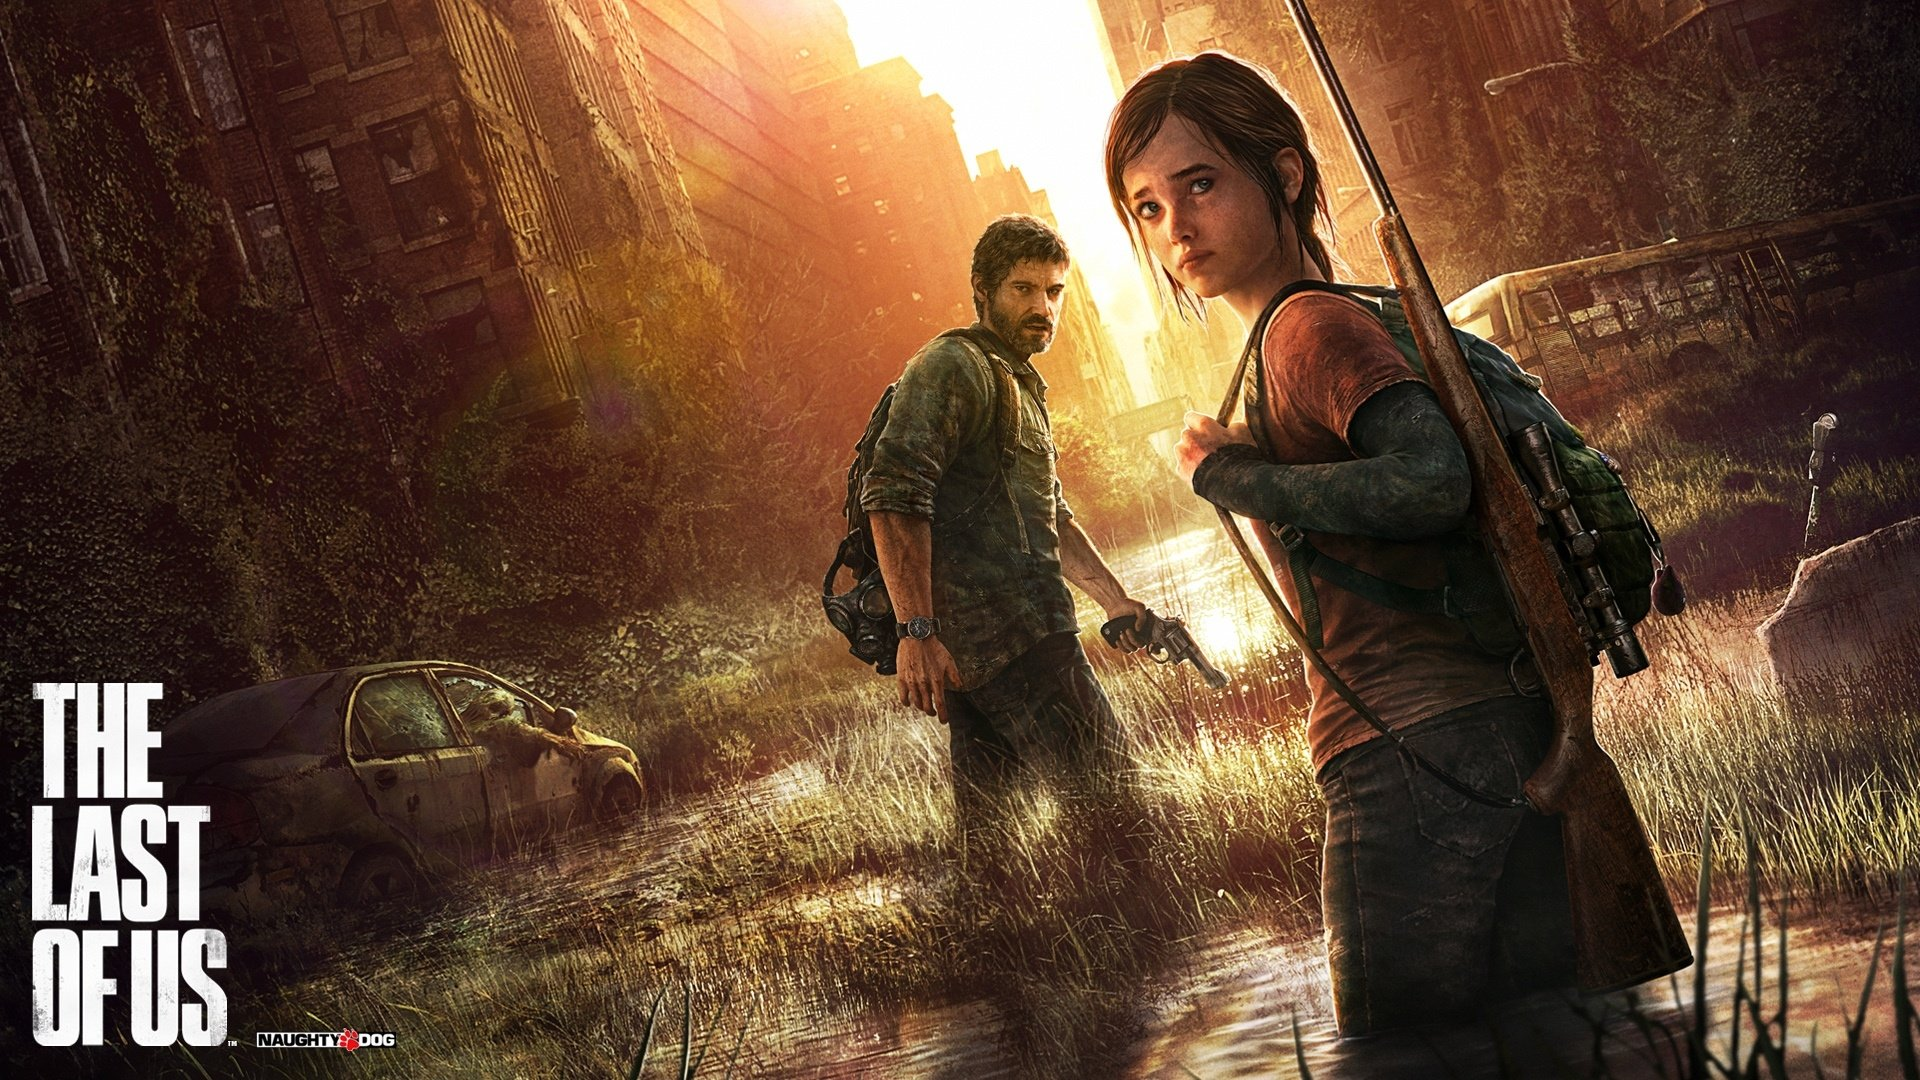 the last of us joel & ellie